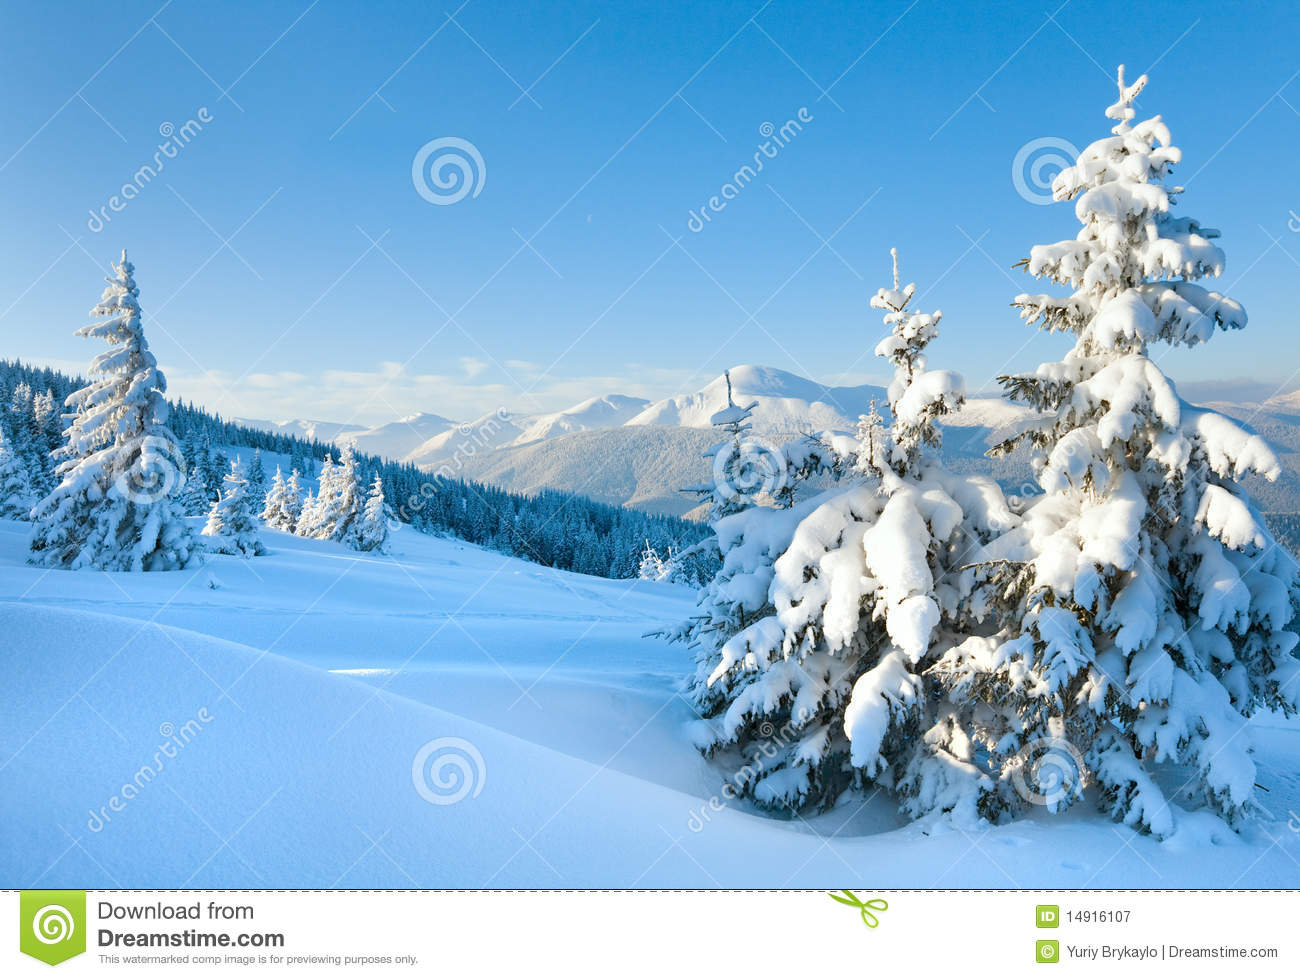 Snowy Landscape Royalty Free Stock Photography - Image: 14916107